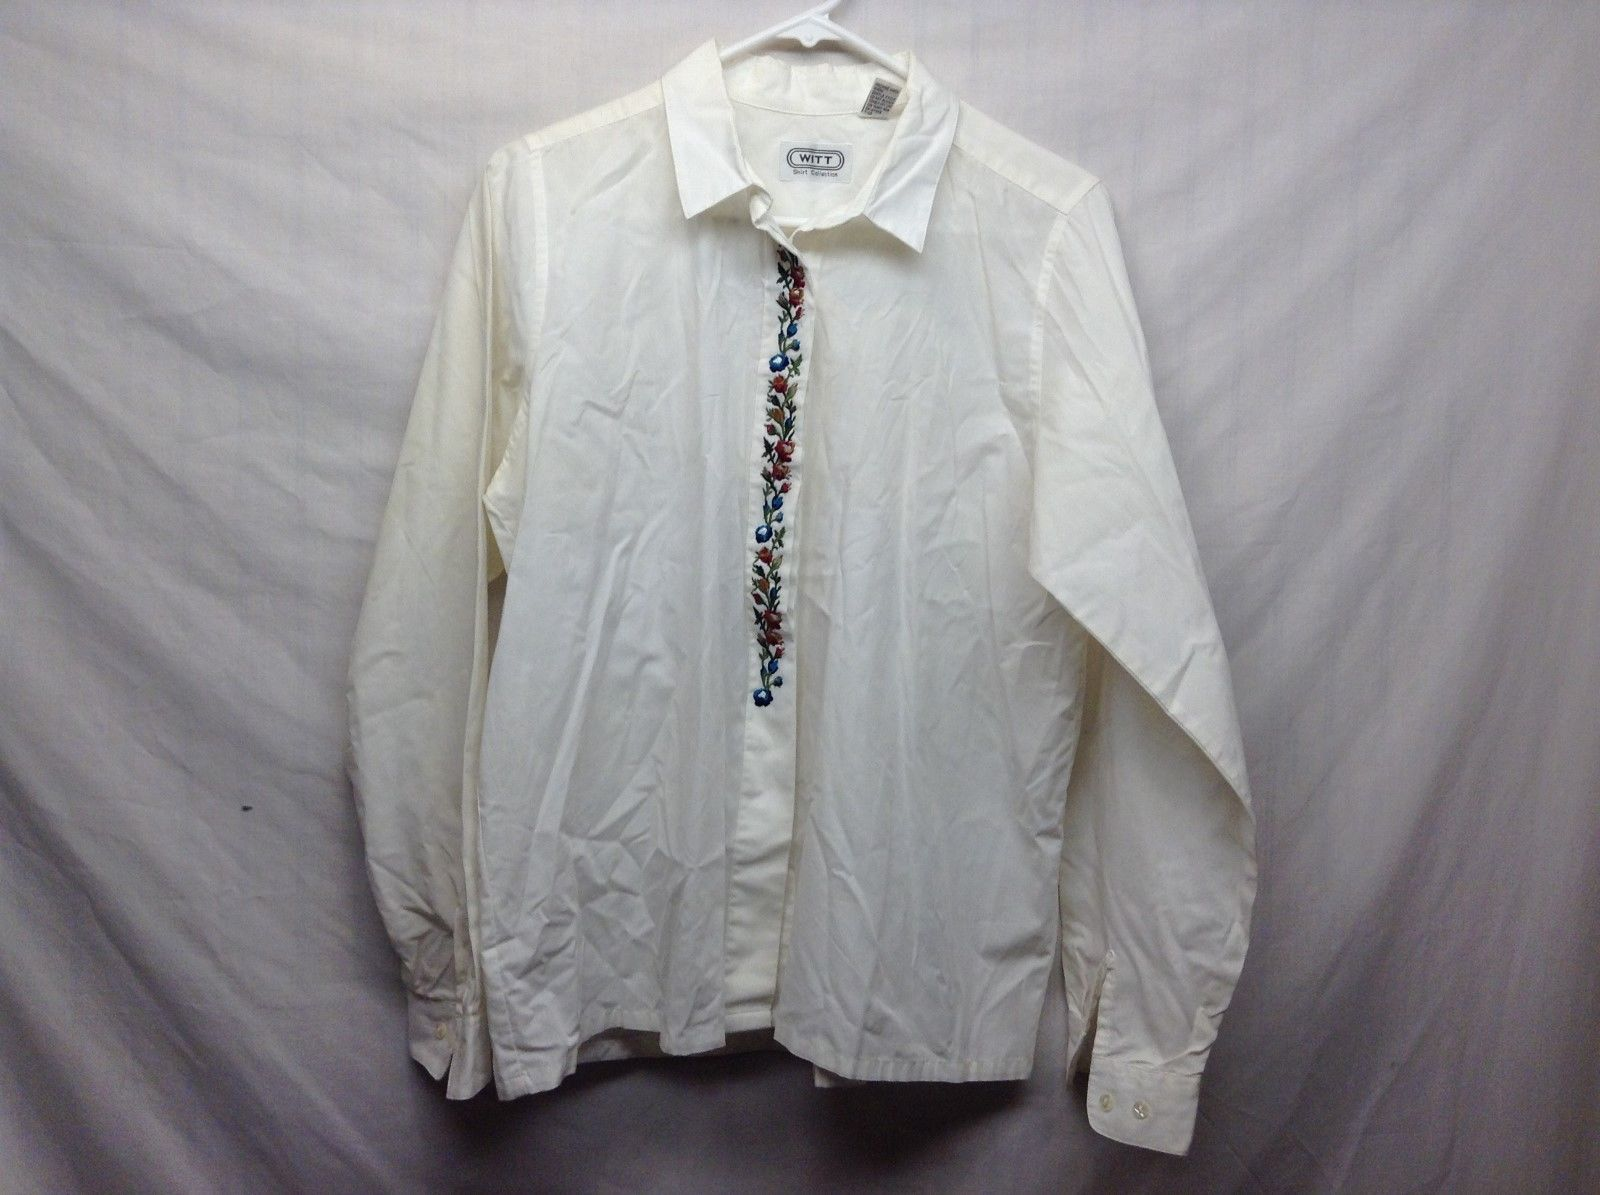 Witt Ivory Blouse w Beautiful Floral Embroidery Sz 14